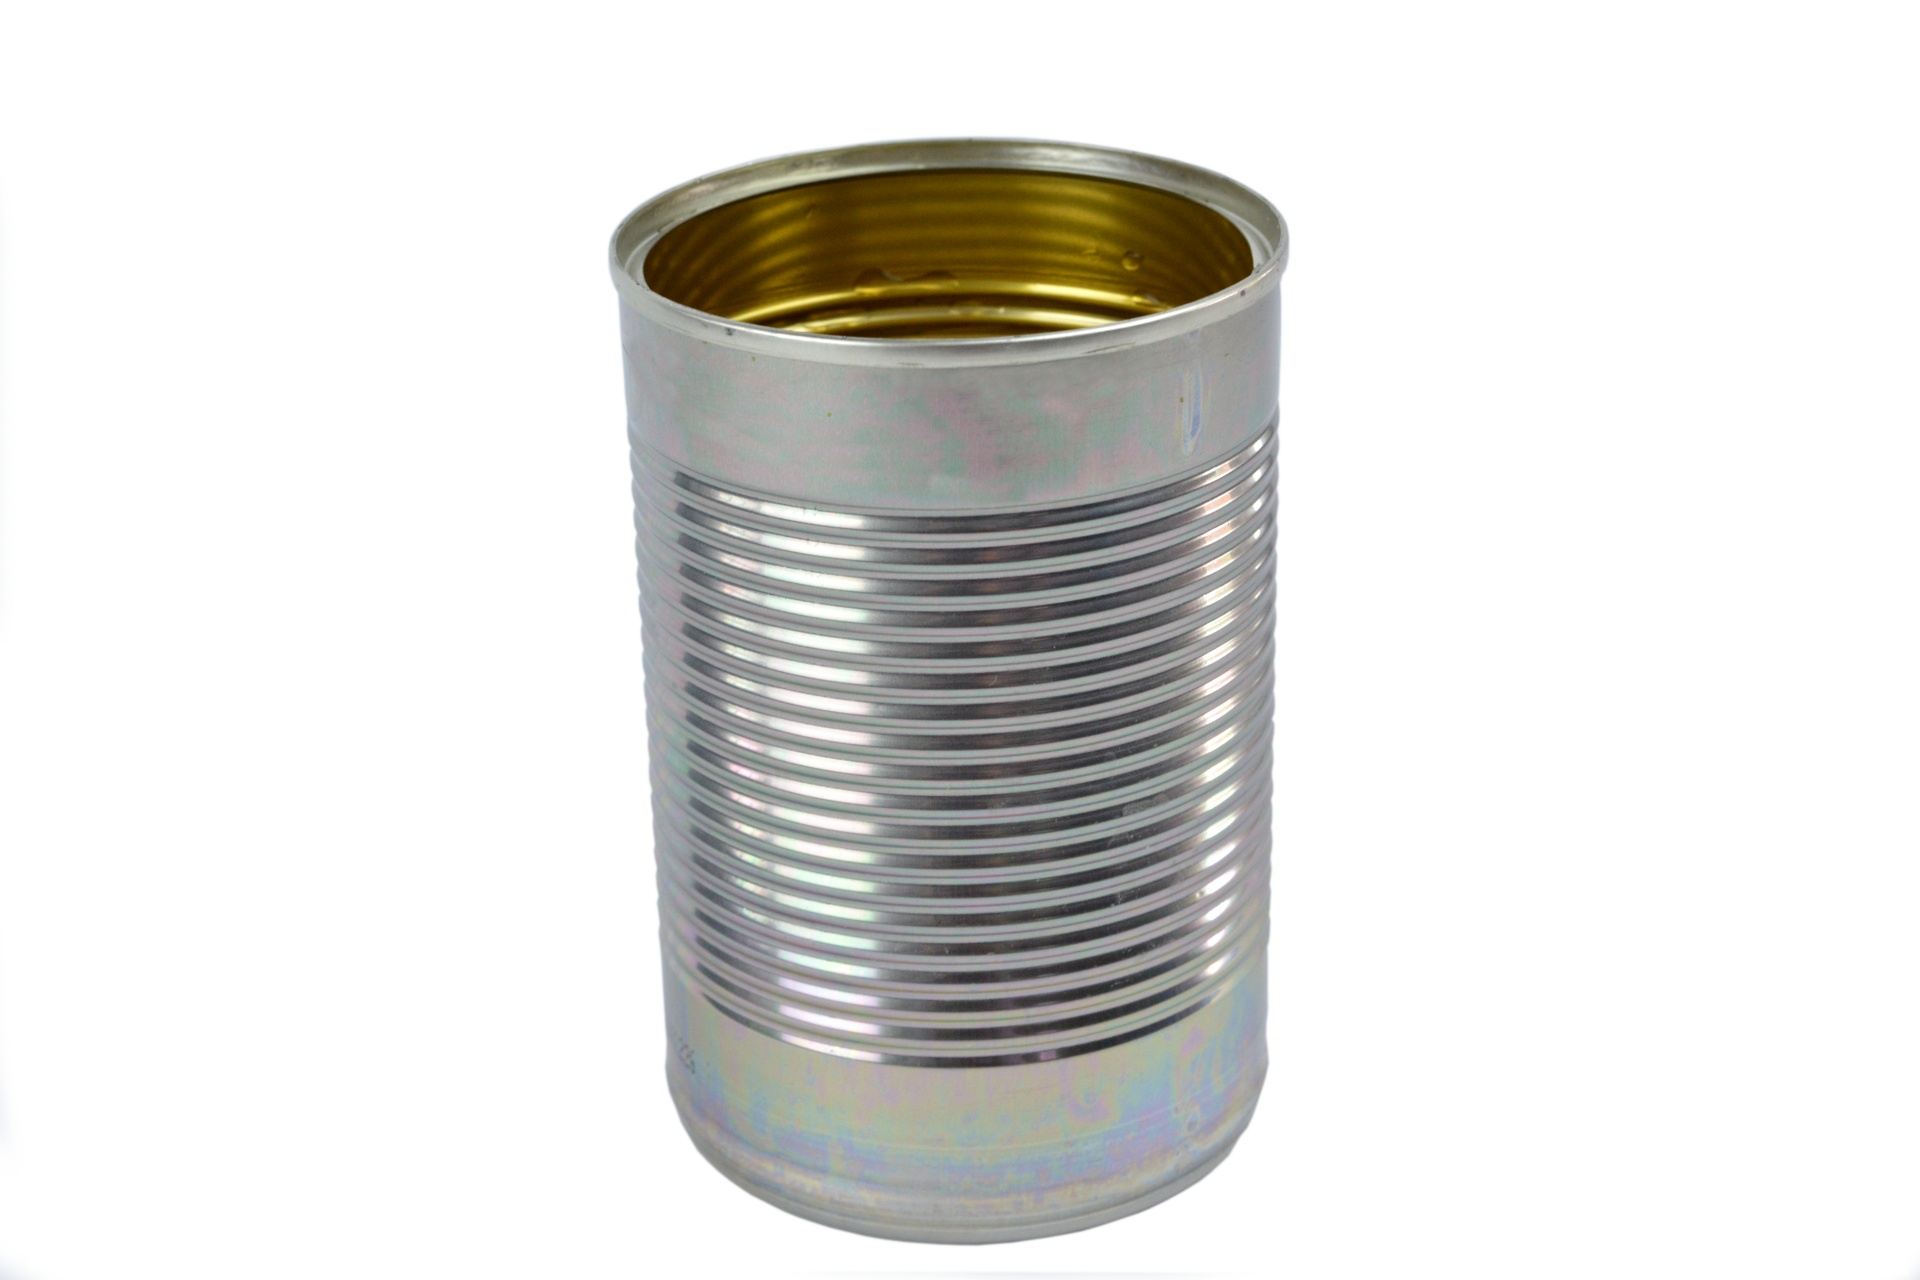 empty-metal-food-cane